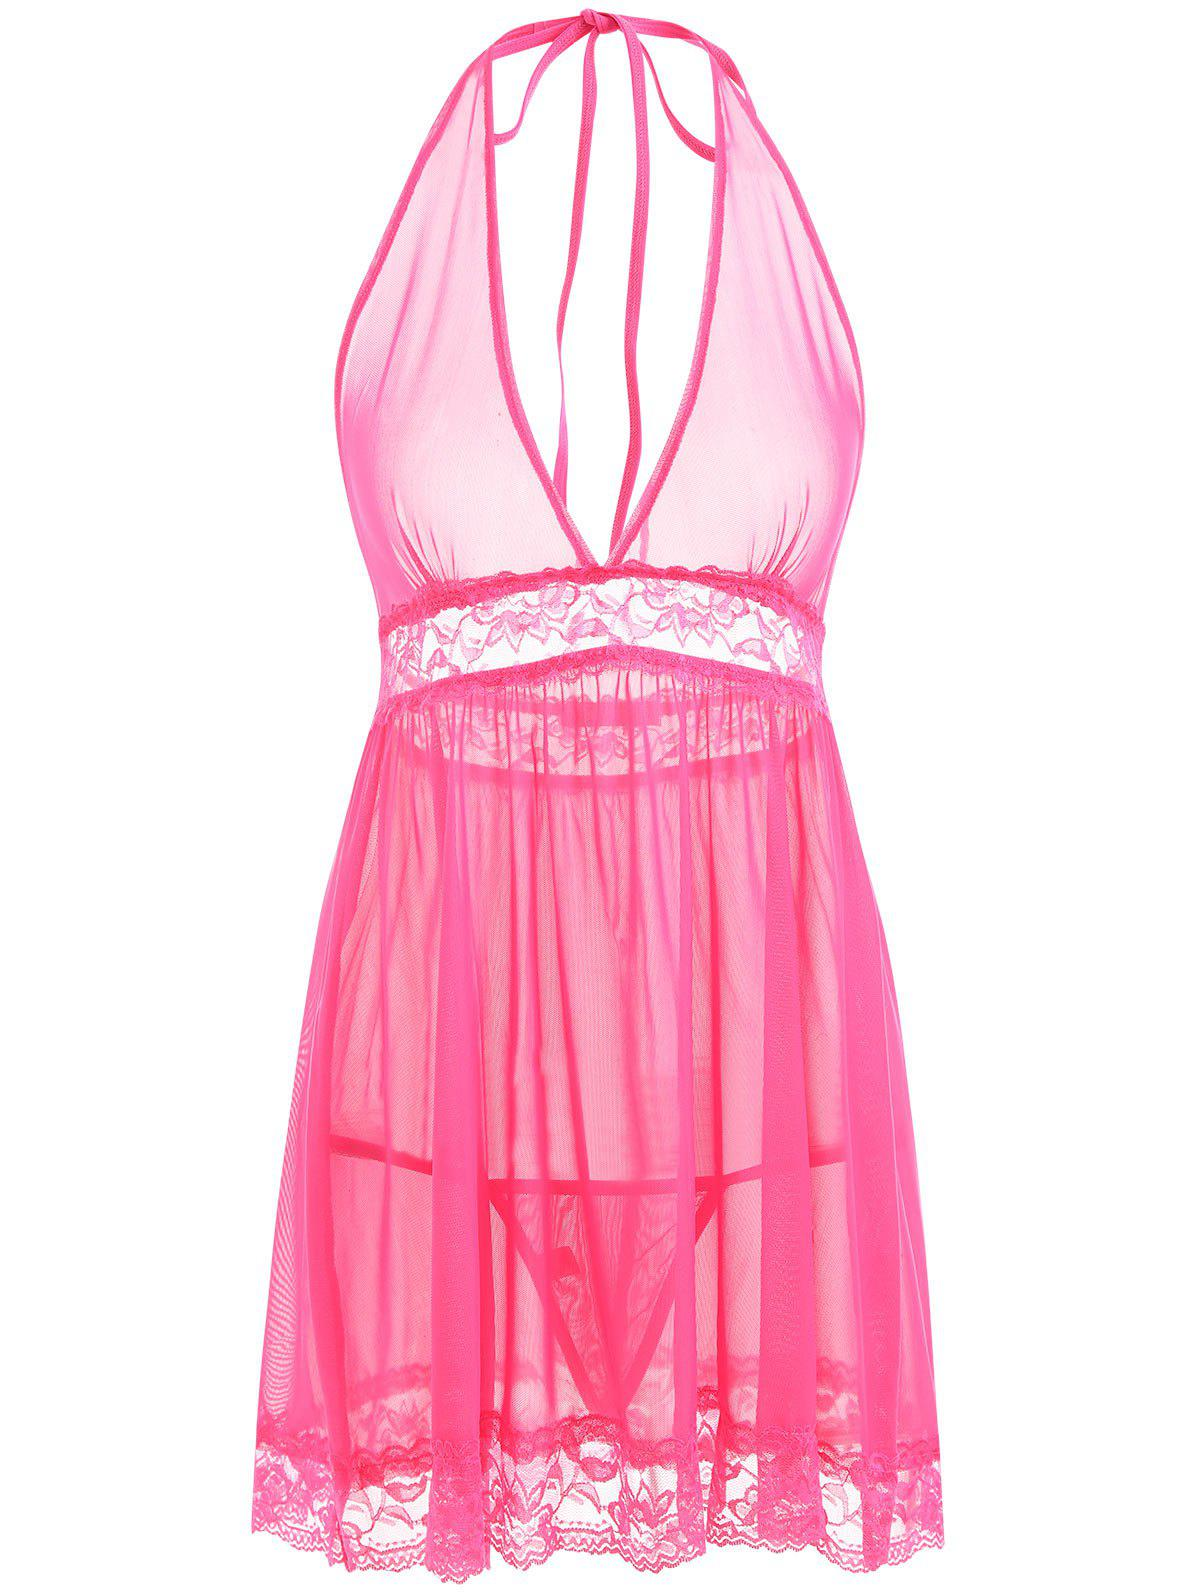 Mesh See Thru Backless Babydoll - TUTTI FRUTTI L